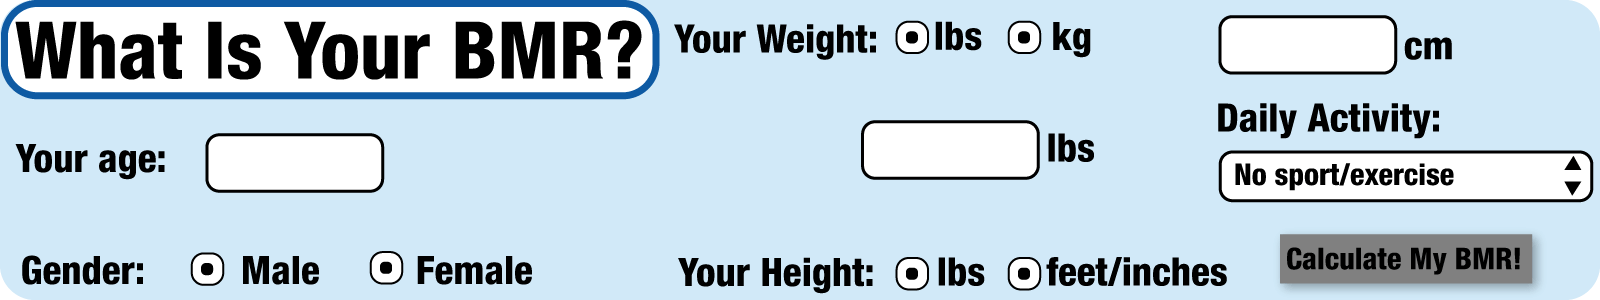 bmr calculator, what to eat, cardio training